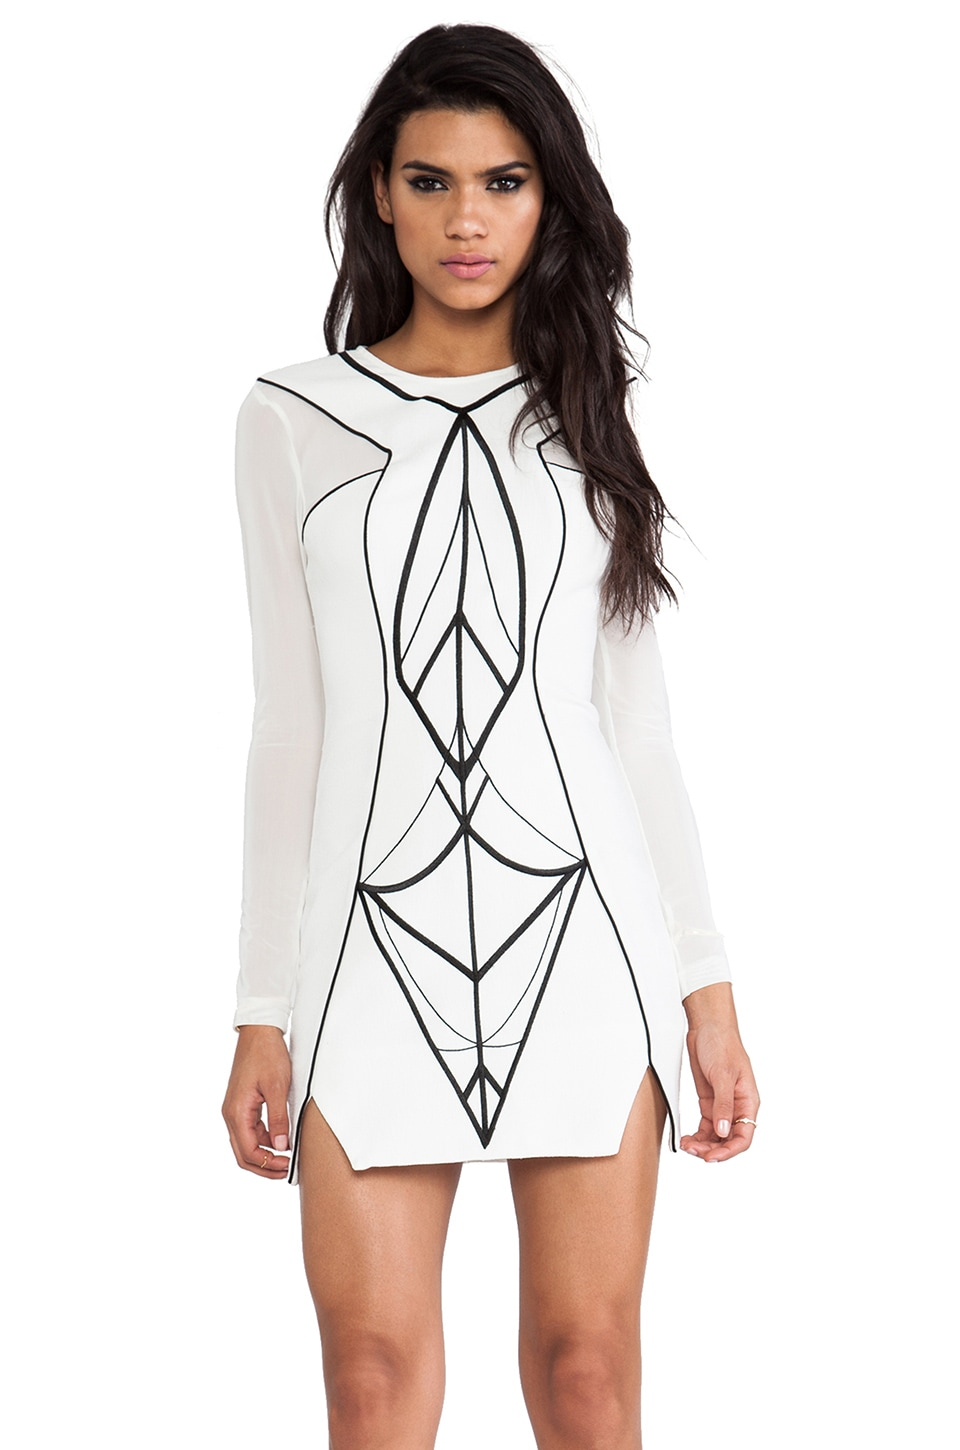 bless'ed are the meek Archangel Dress in Ivory & Black